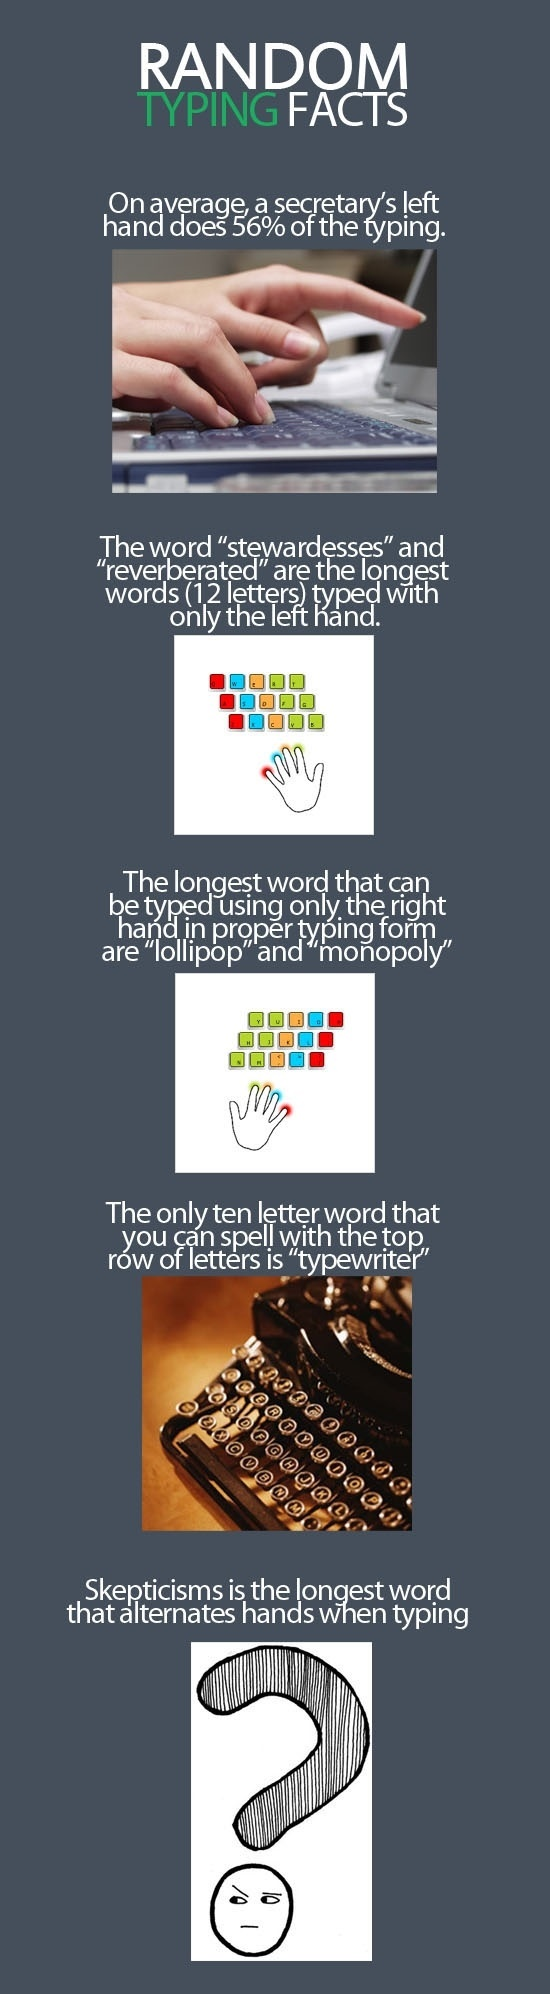 Random Typing Facts, An Infographic